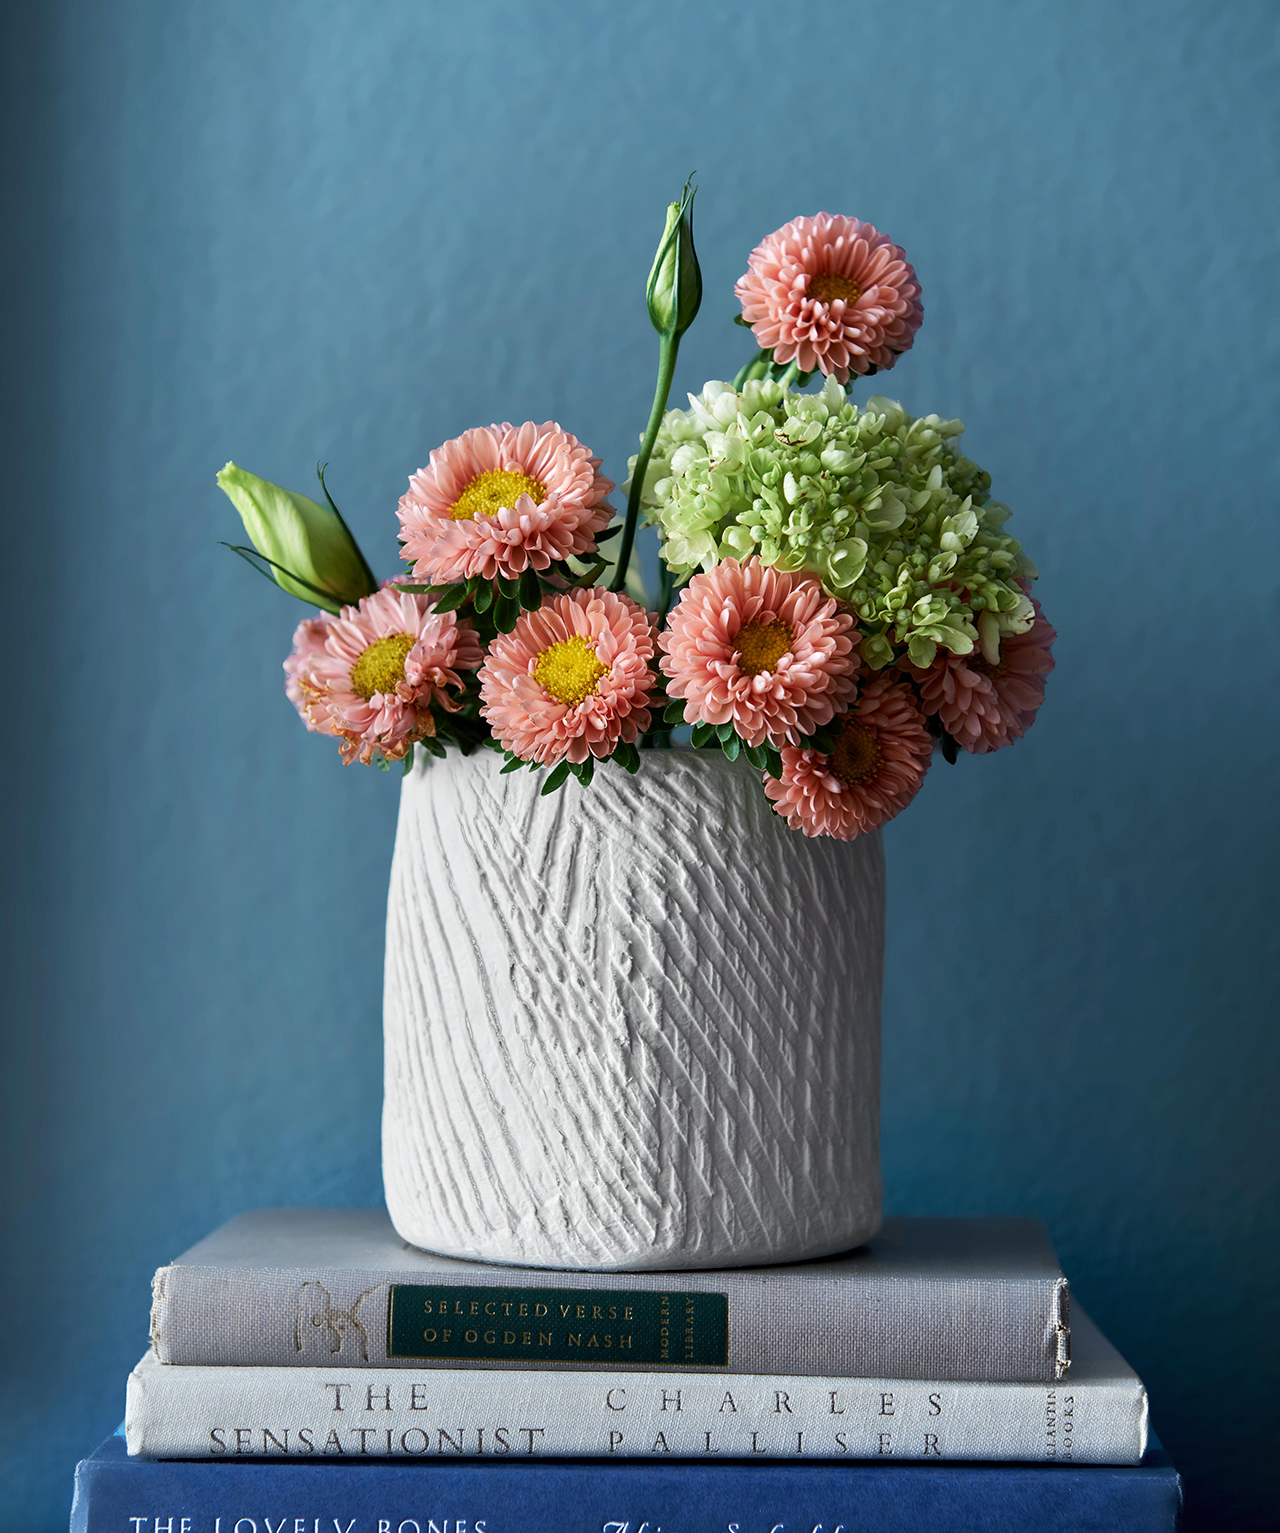 diy white textured vase with flowers on books